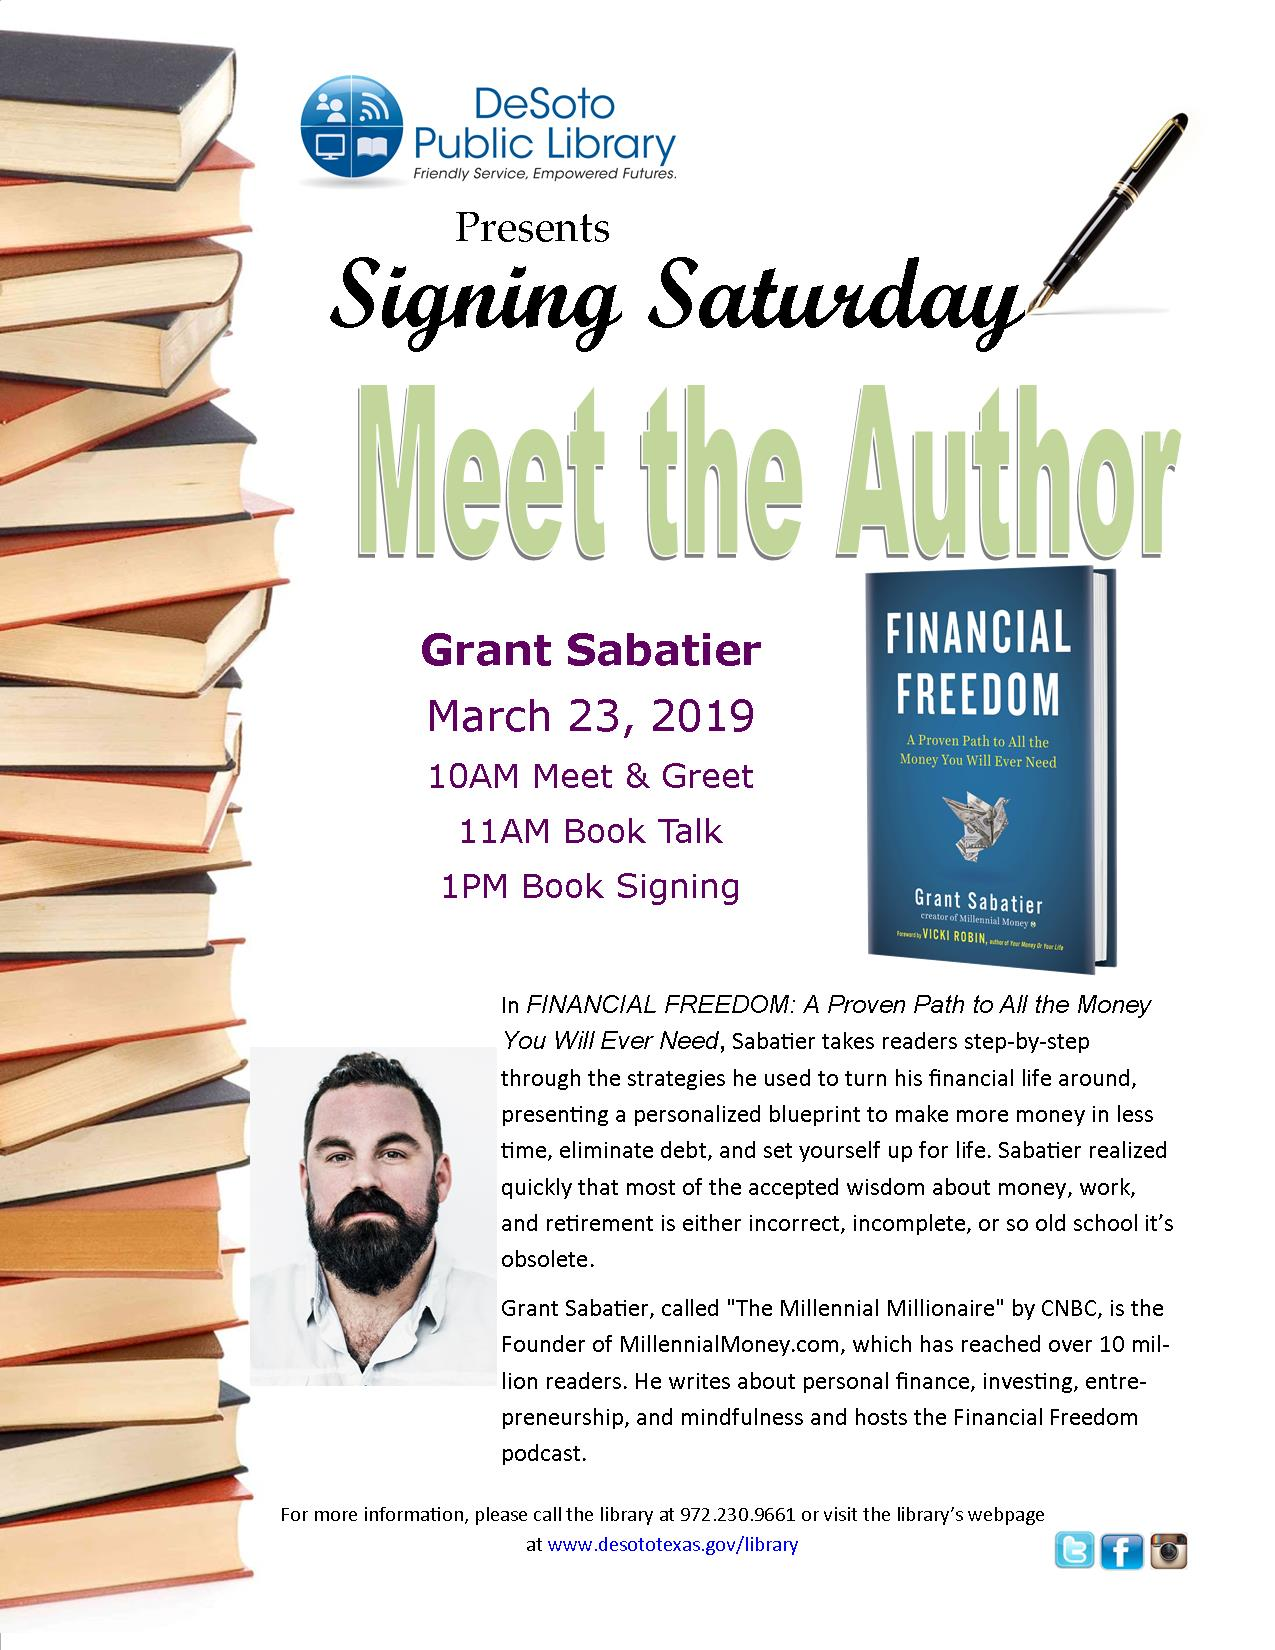 Grant Sabatier-Financial Freedom signing